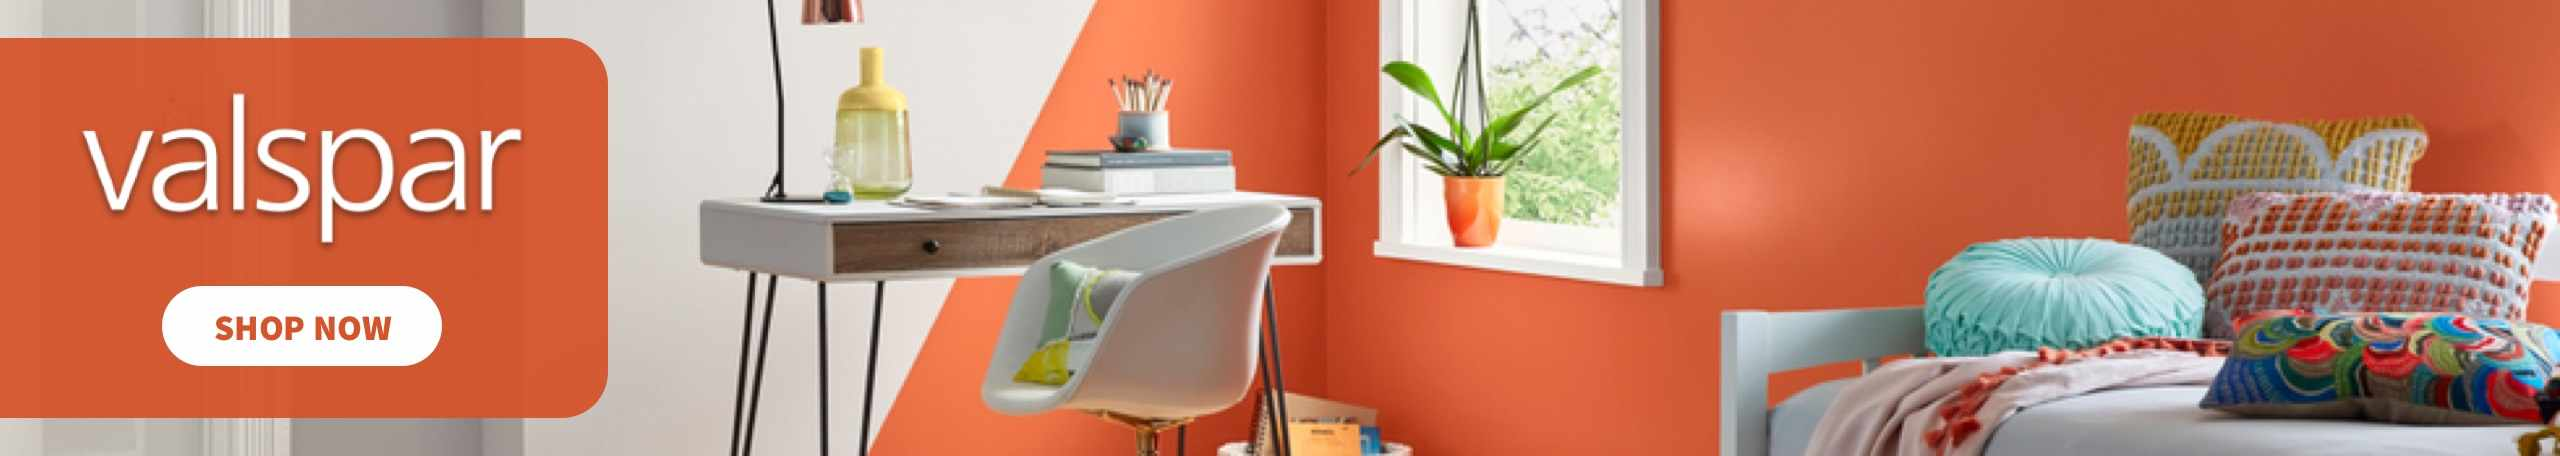 Shop Valspar paint from PaulB Hardware